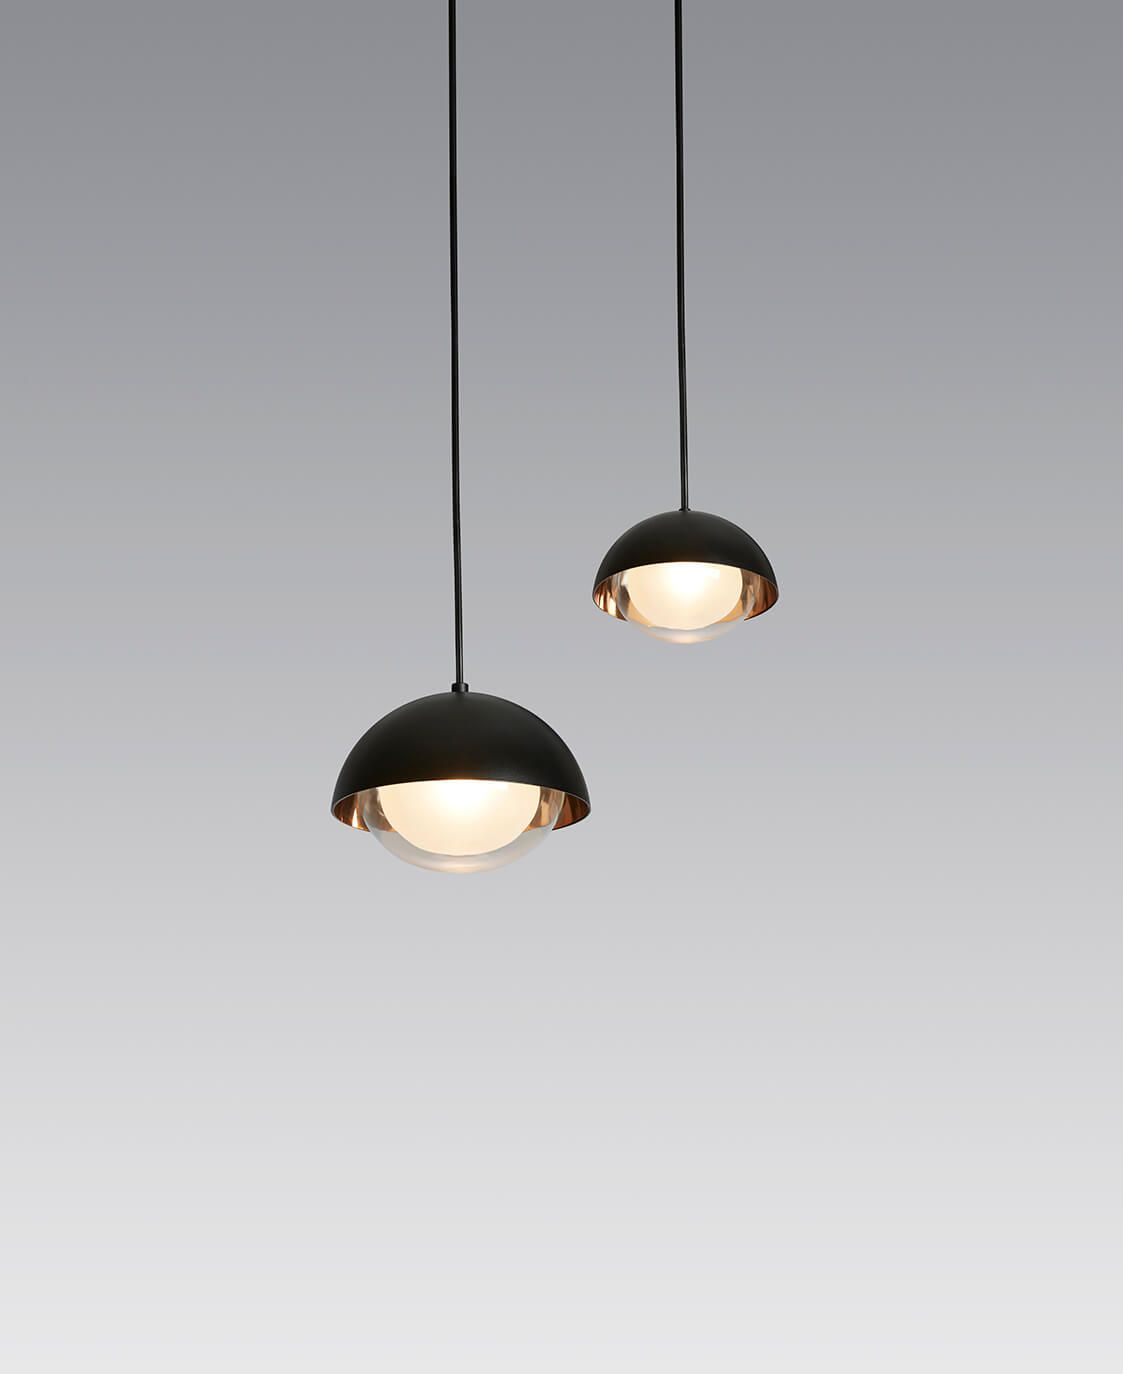 Muse chandelier by tooy available at radiant lighting